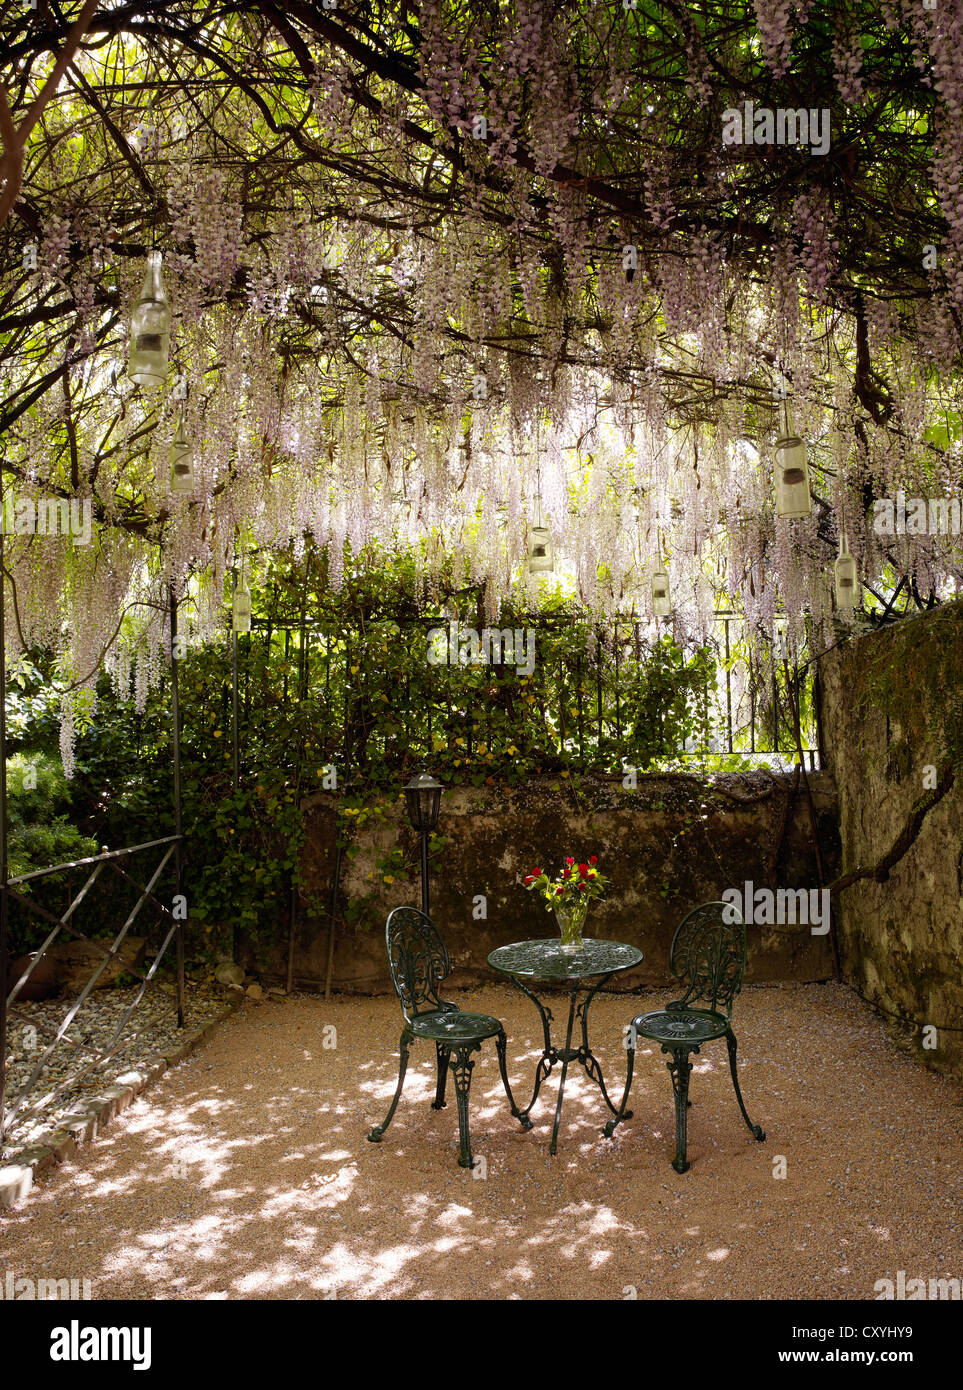 Round, cast-iron garden bistro table with two chairs in a romantic backyard Stock Photo